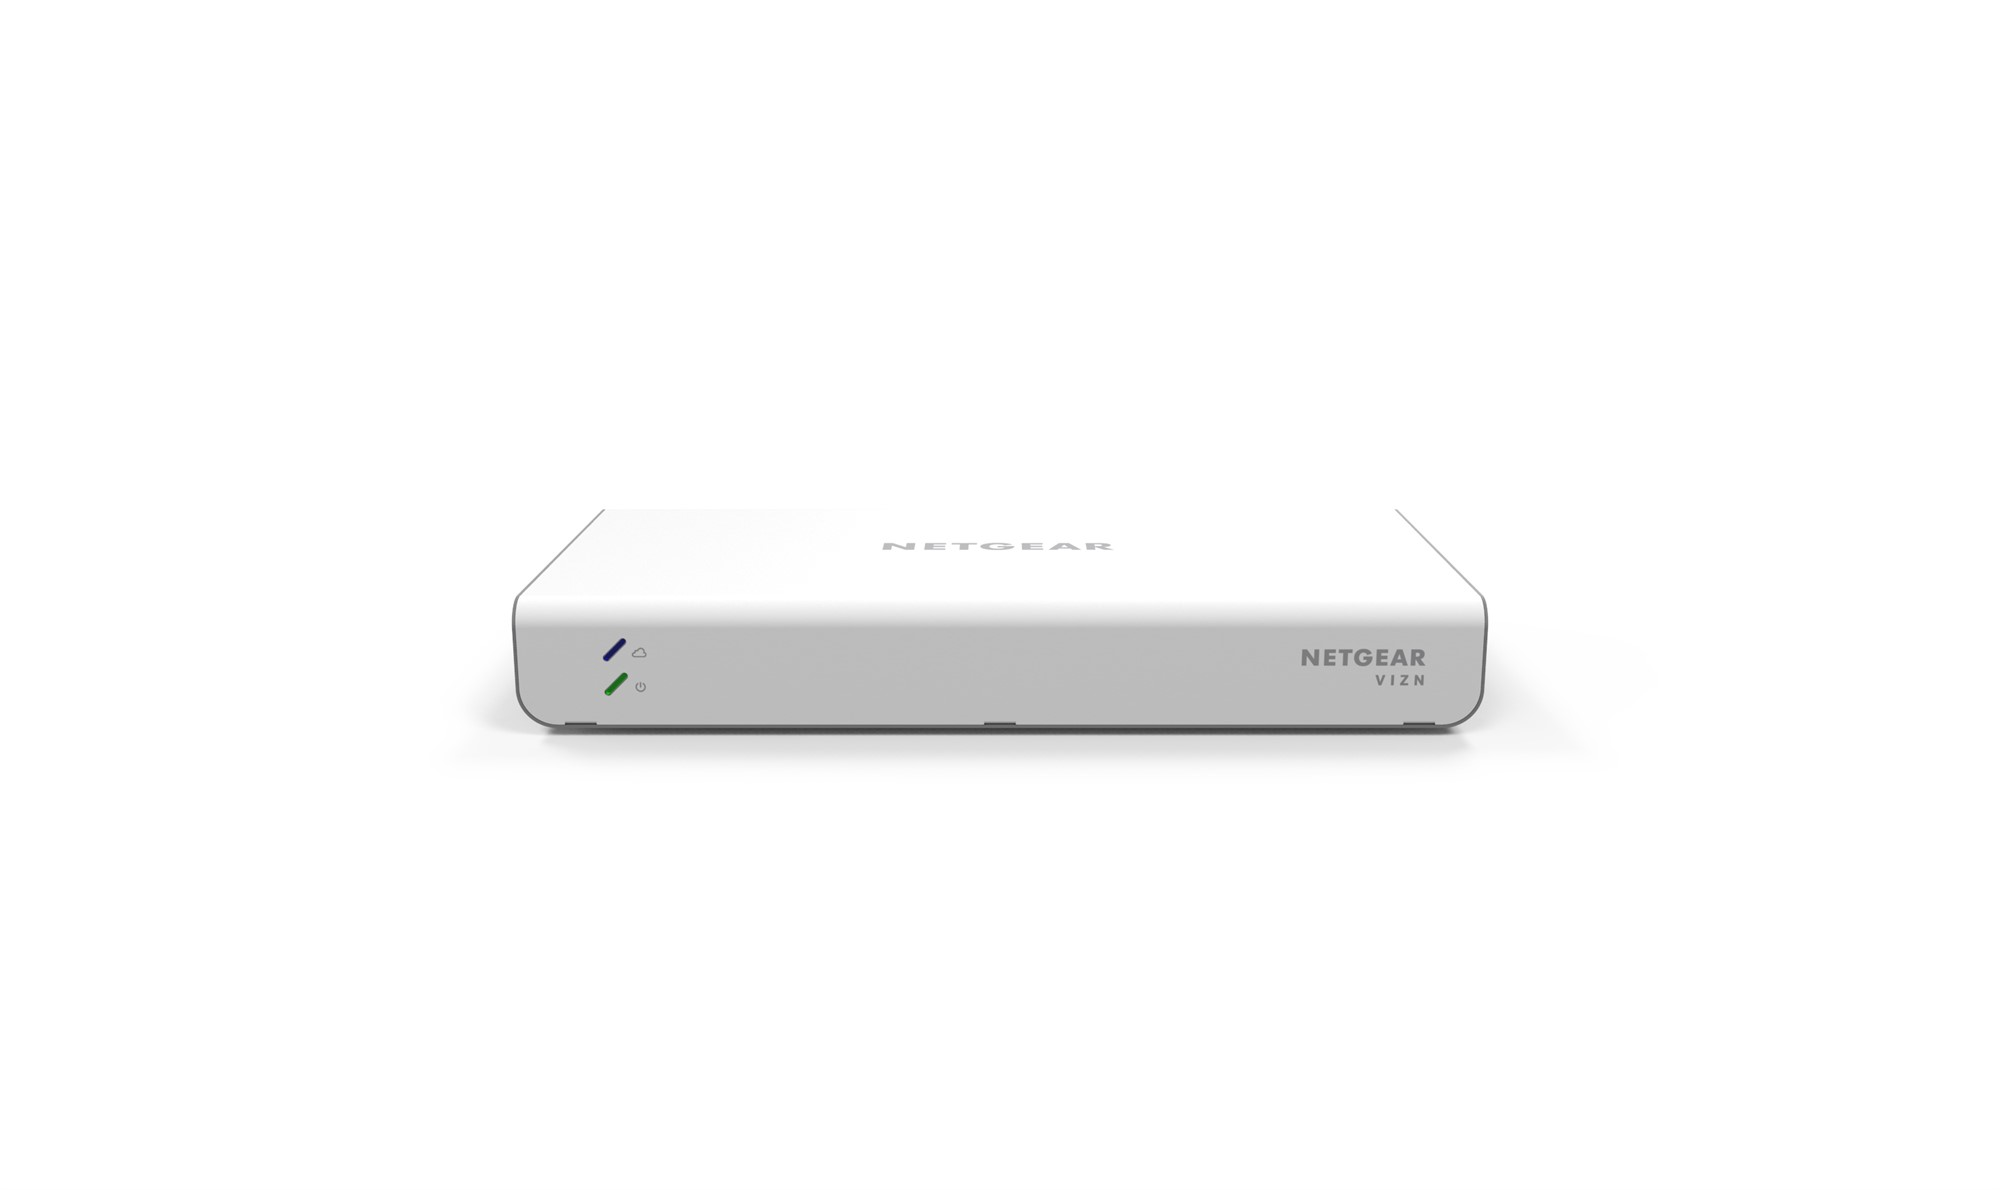 NETGEAR GC110-100PES GC110 MANAGED GIGABIT ETHERNET (10/100/1000) GREY